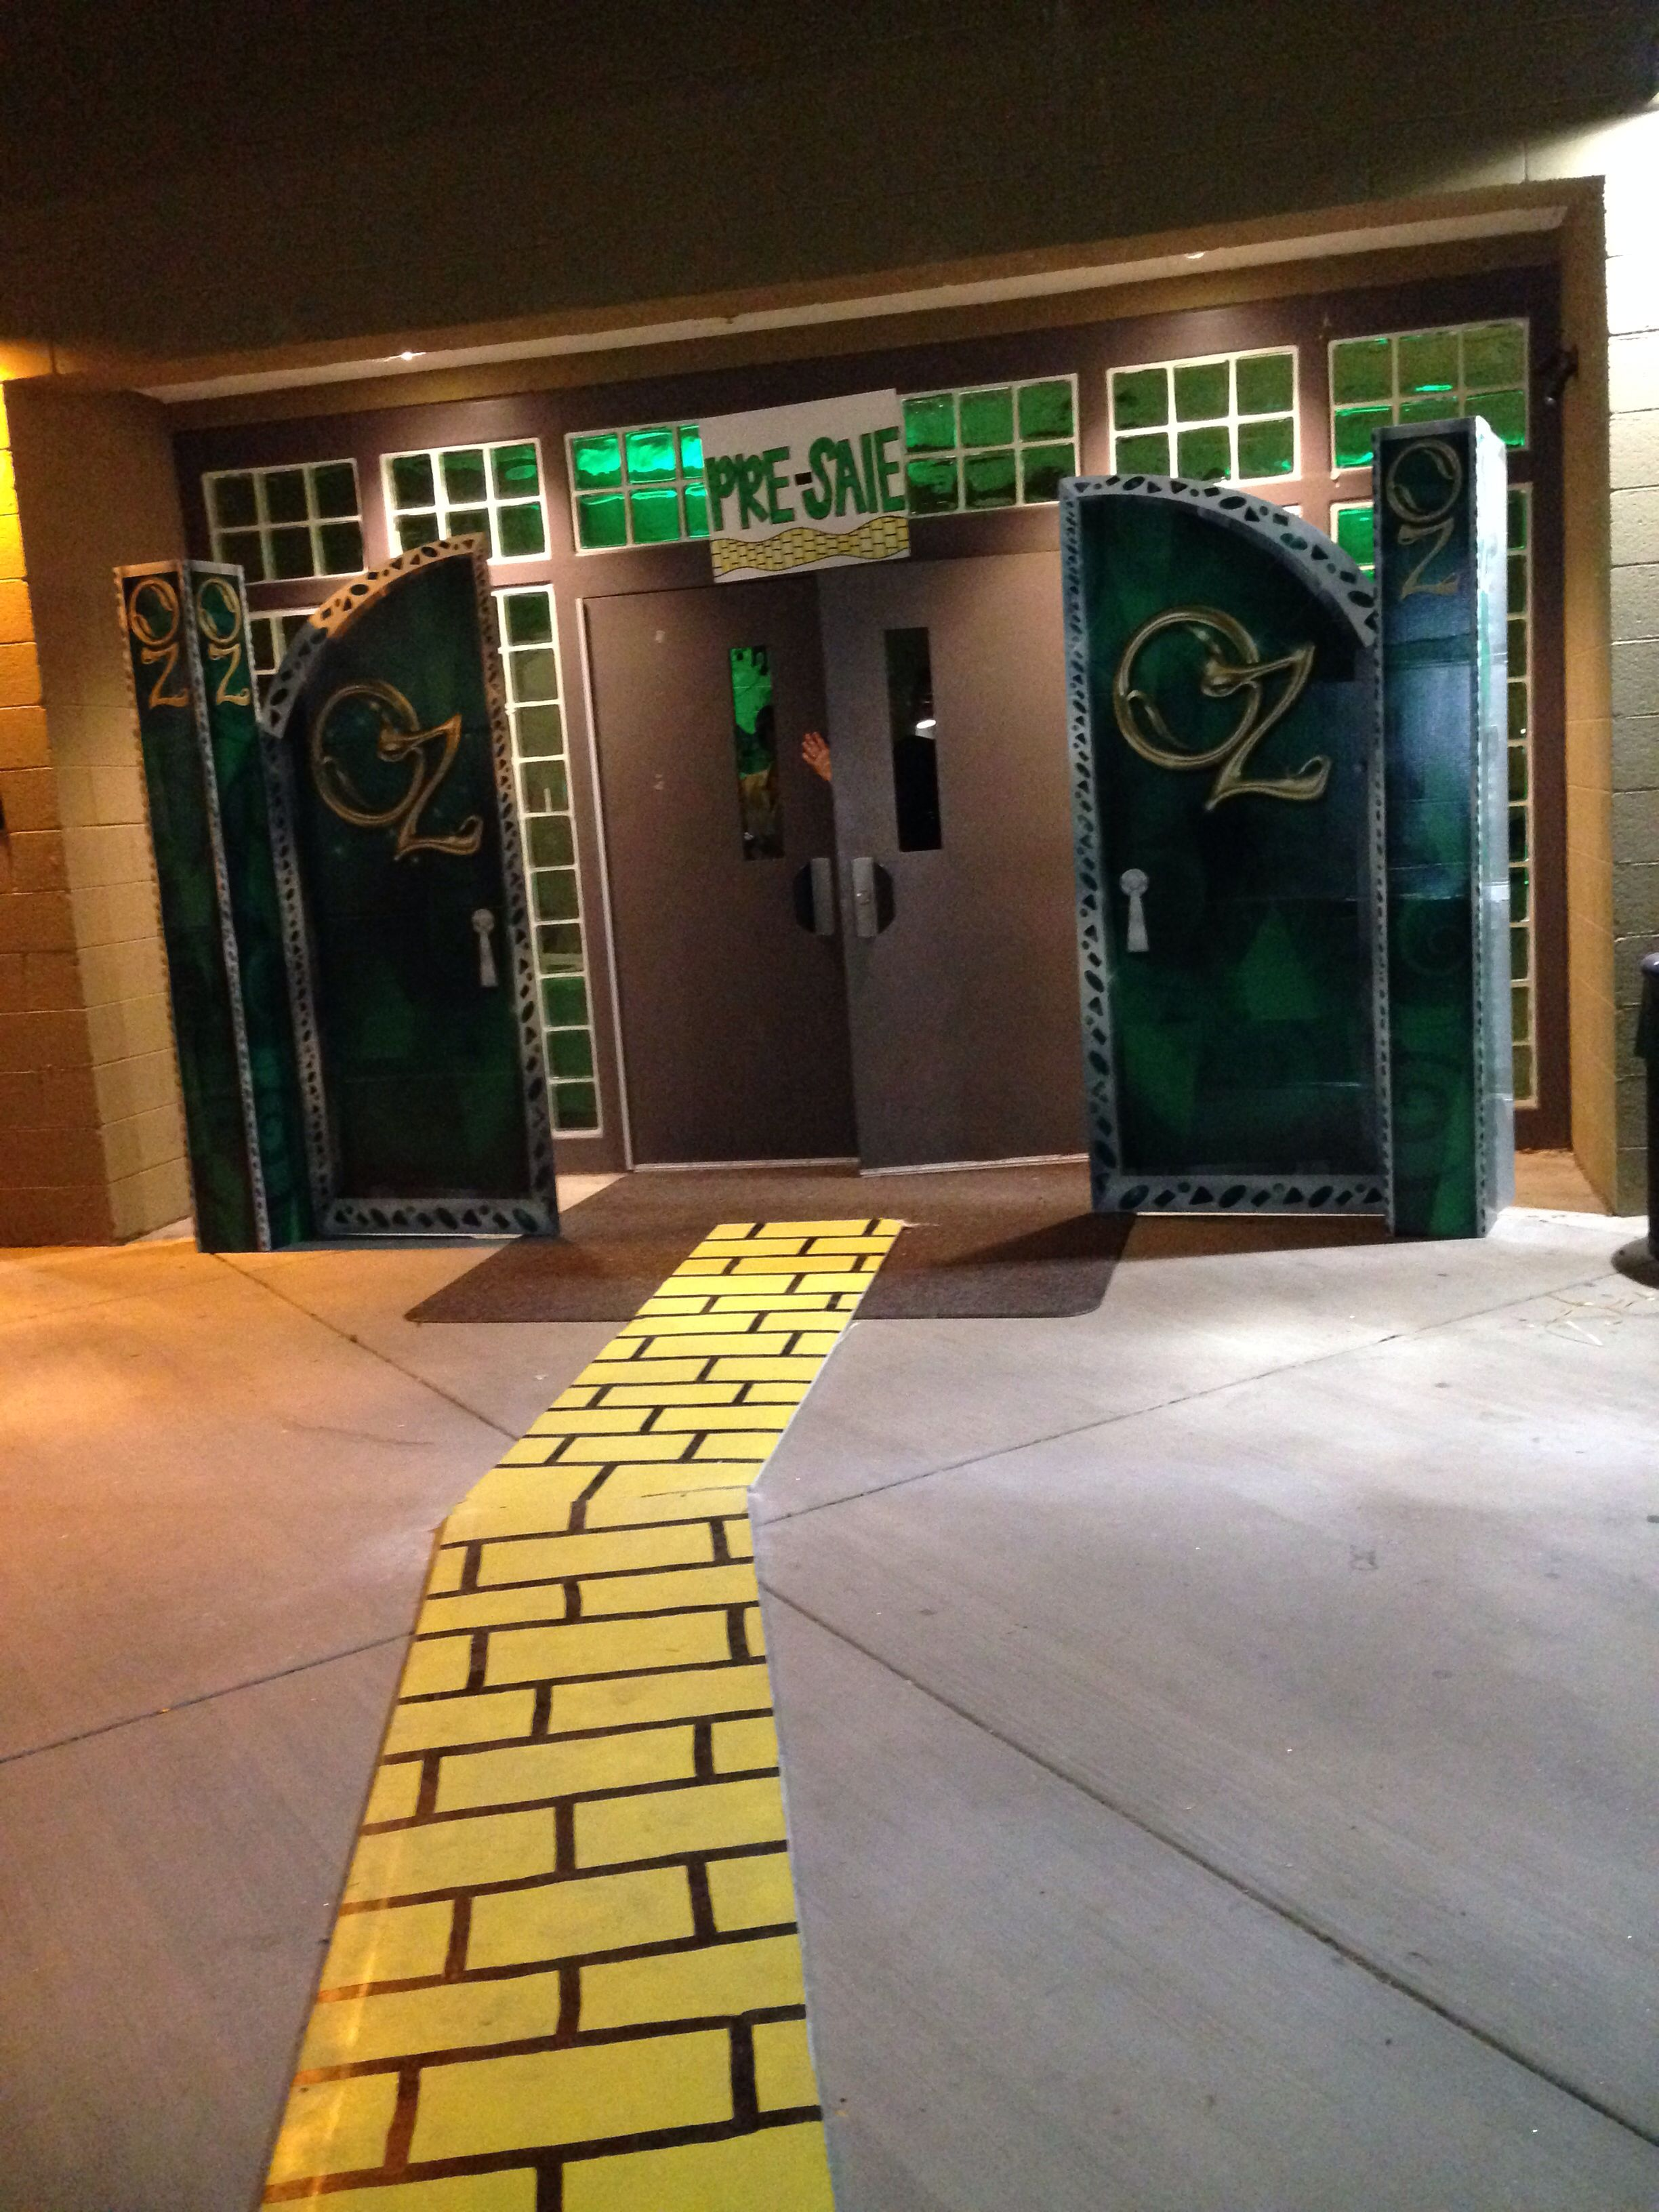 Wizard of oz homecoming spirit week theme with Oz doors and DIY ...